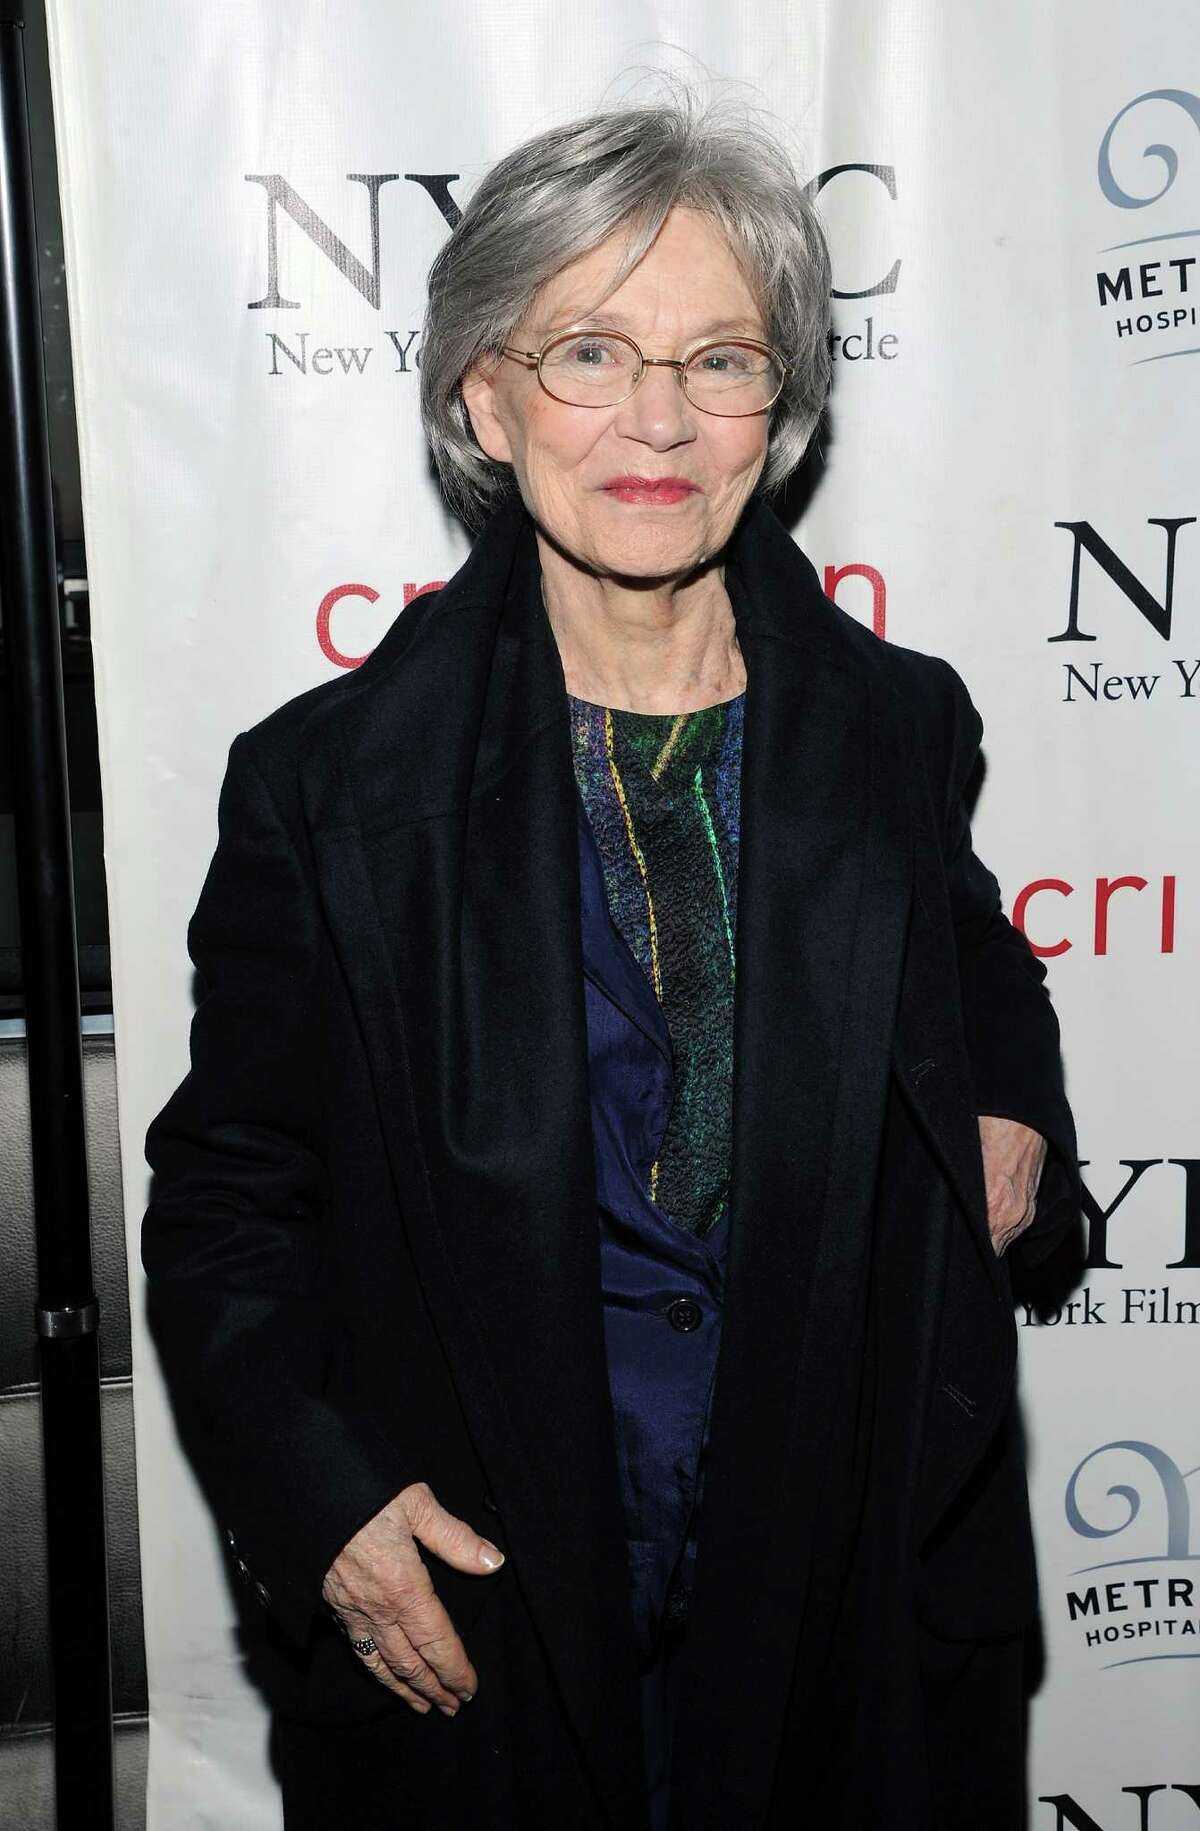 French actress Emmanuelle Riva arrives at the New York Film Critics Circle awards dinner at the Crimson Club on Monday Jan. 7, 2013 in New York.